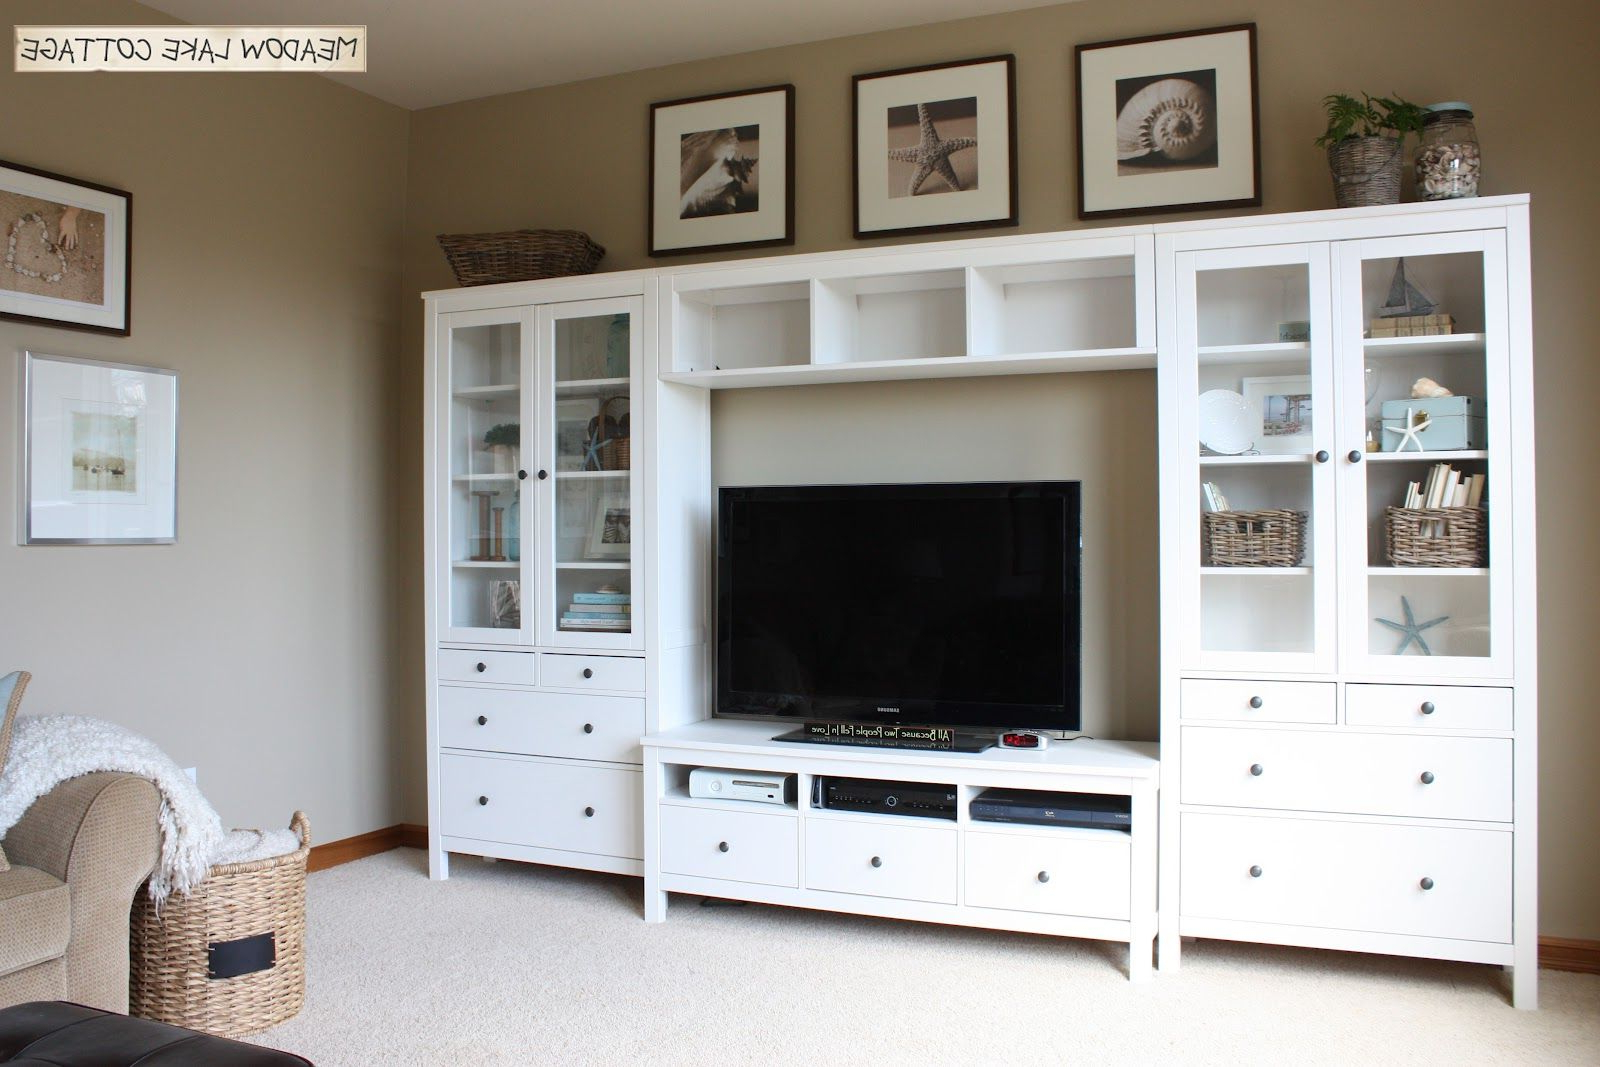 2017 20+ Best Diy Entertainment Center Design Ideas For Living Room In Within Ikea Built In Tv Cabinets (Gallery 11 of 20)